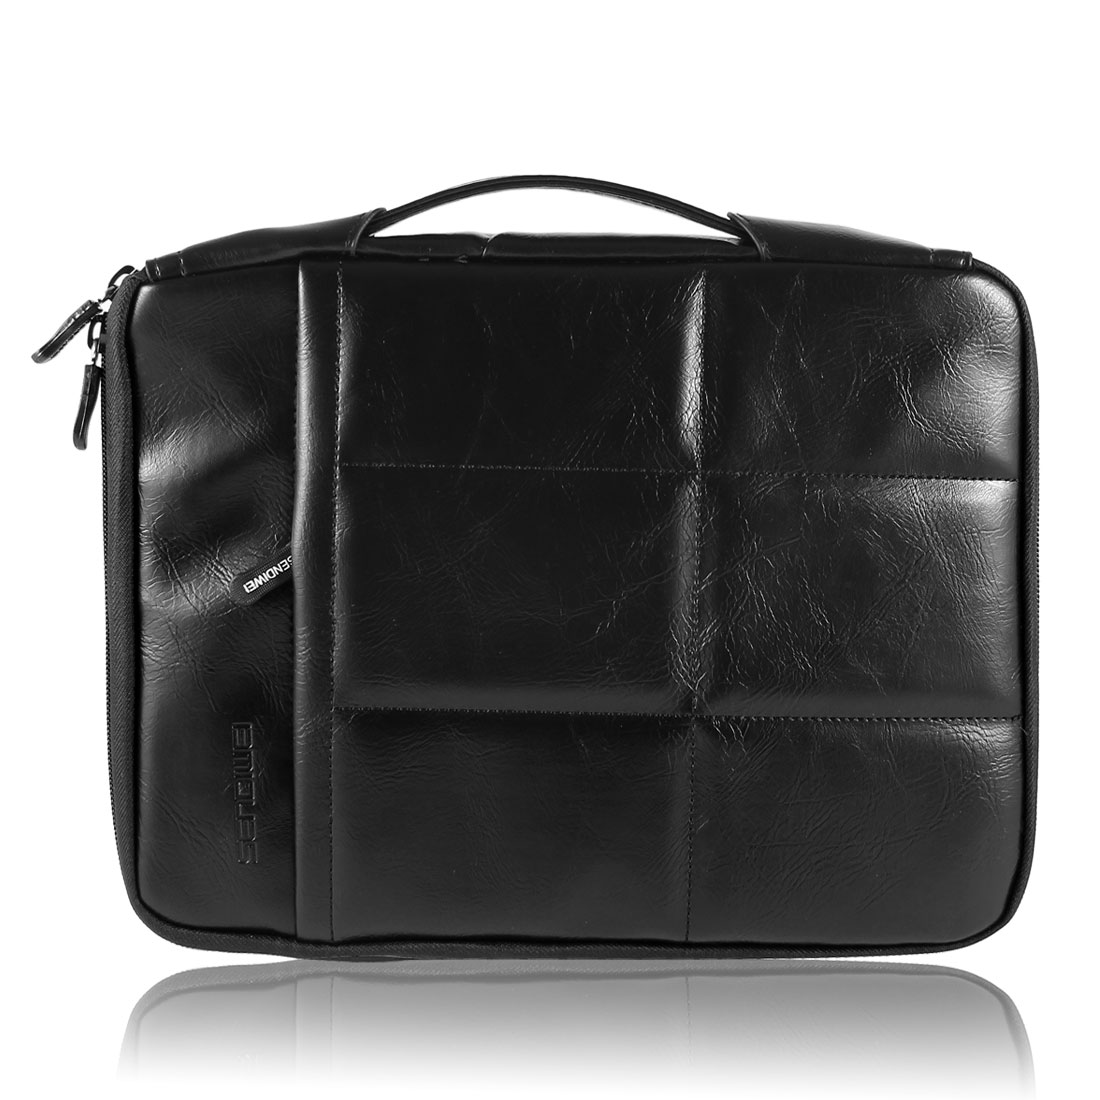 "Fleece Lining Sleeve Case Cover Handbag Black for 10.6"" Tablet Laptop Computer"